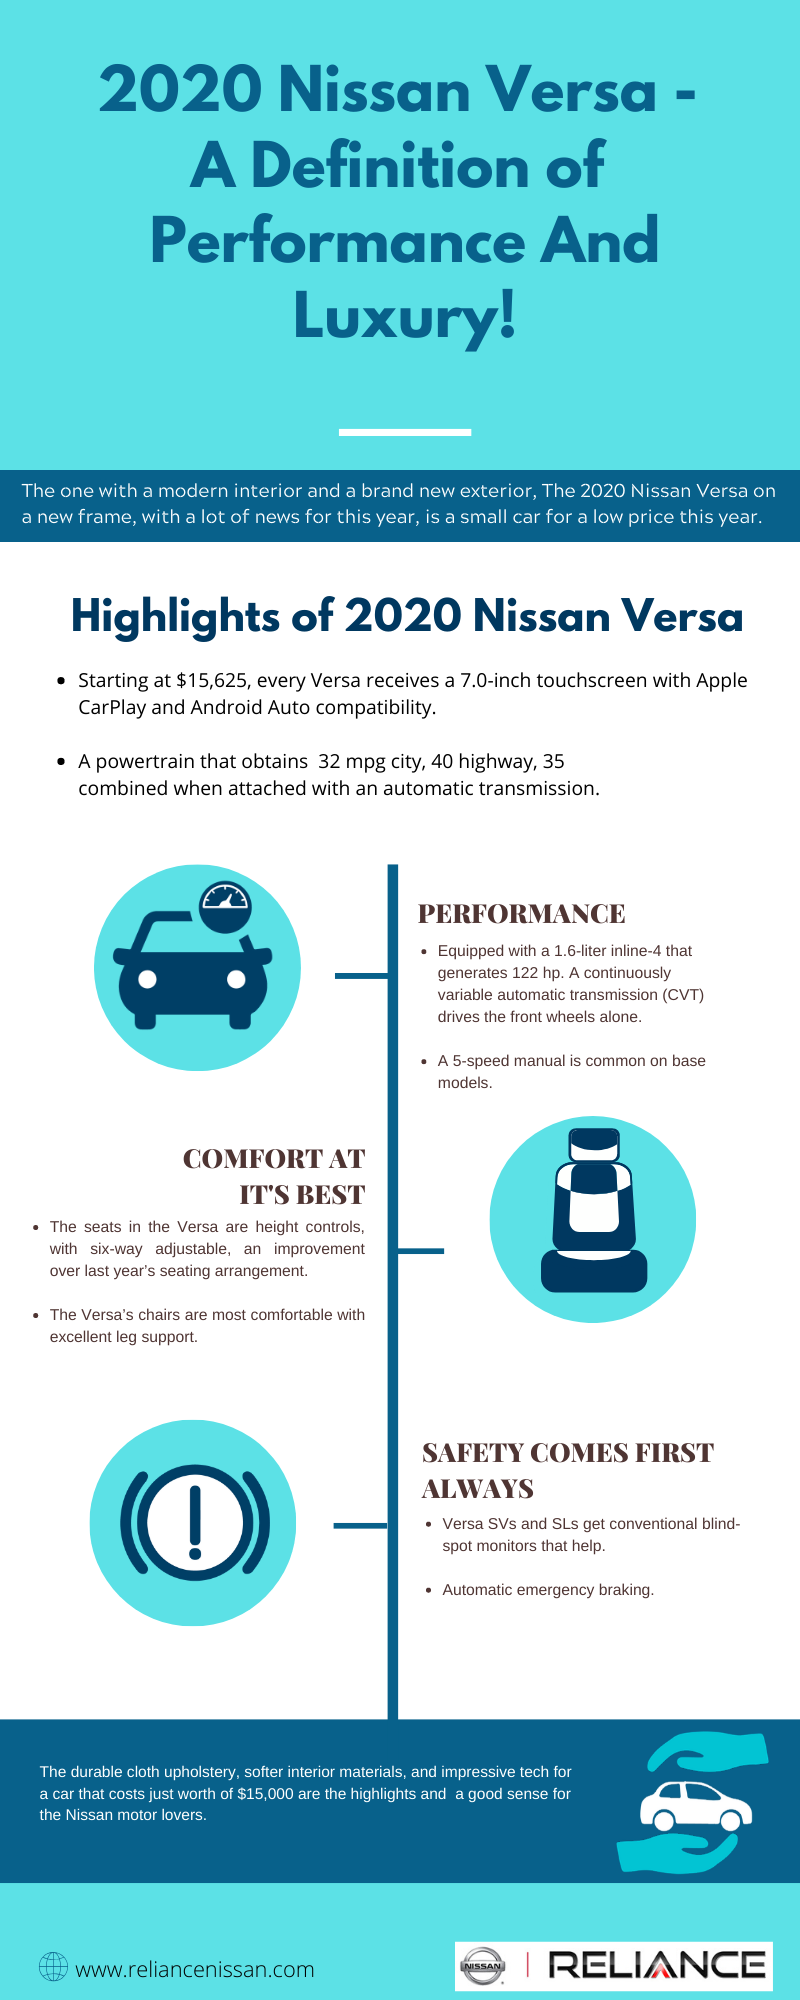 2020 Nissan Versa - Reliance Nissan of Alvin